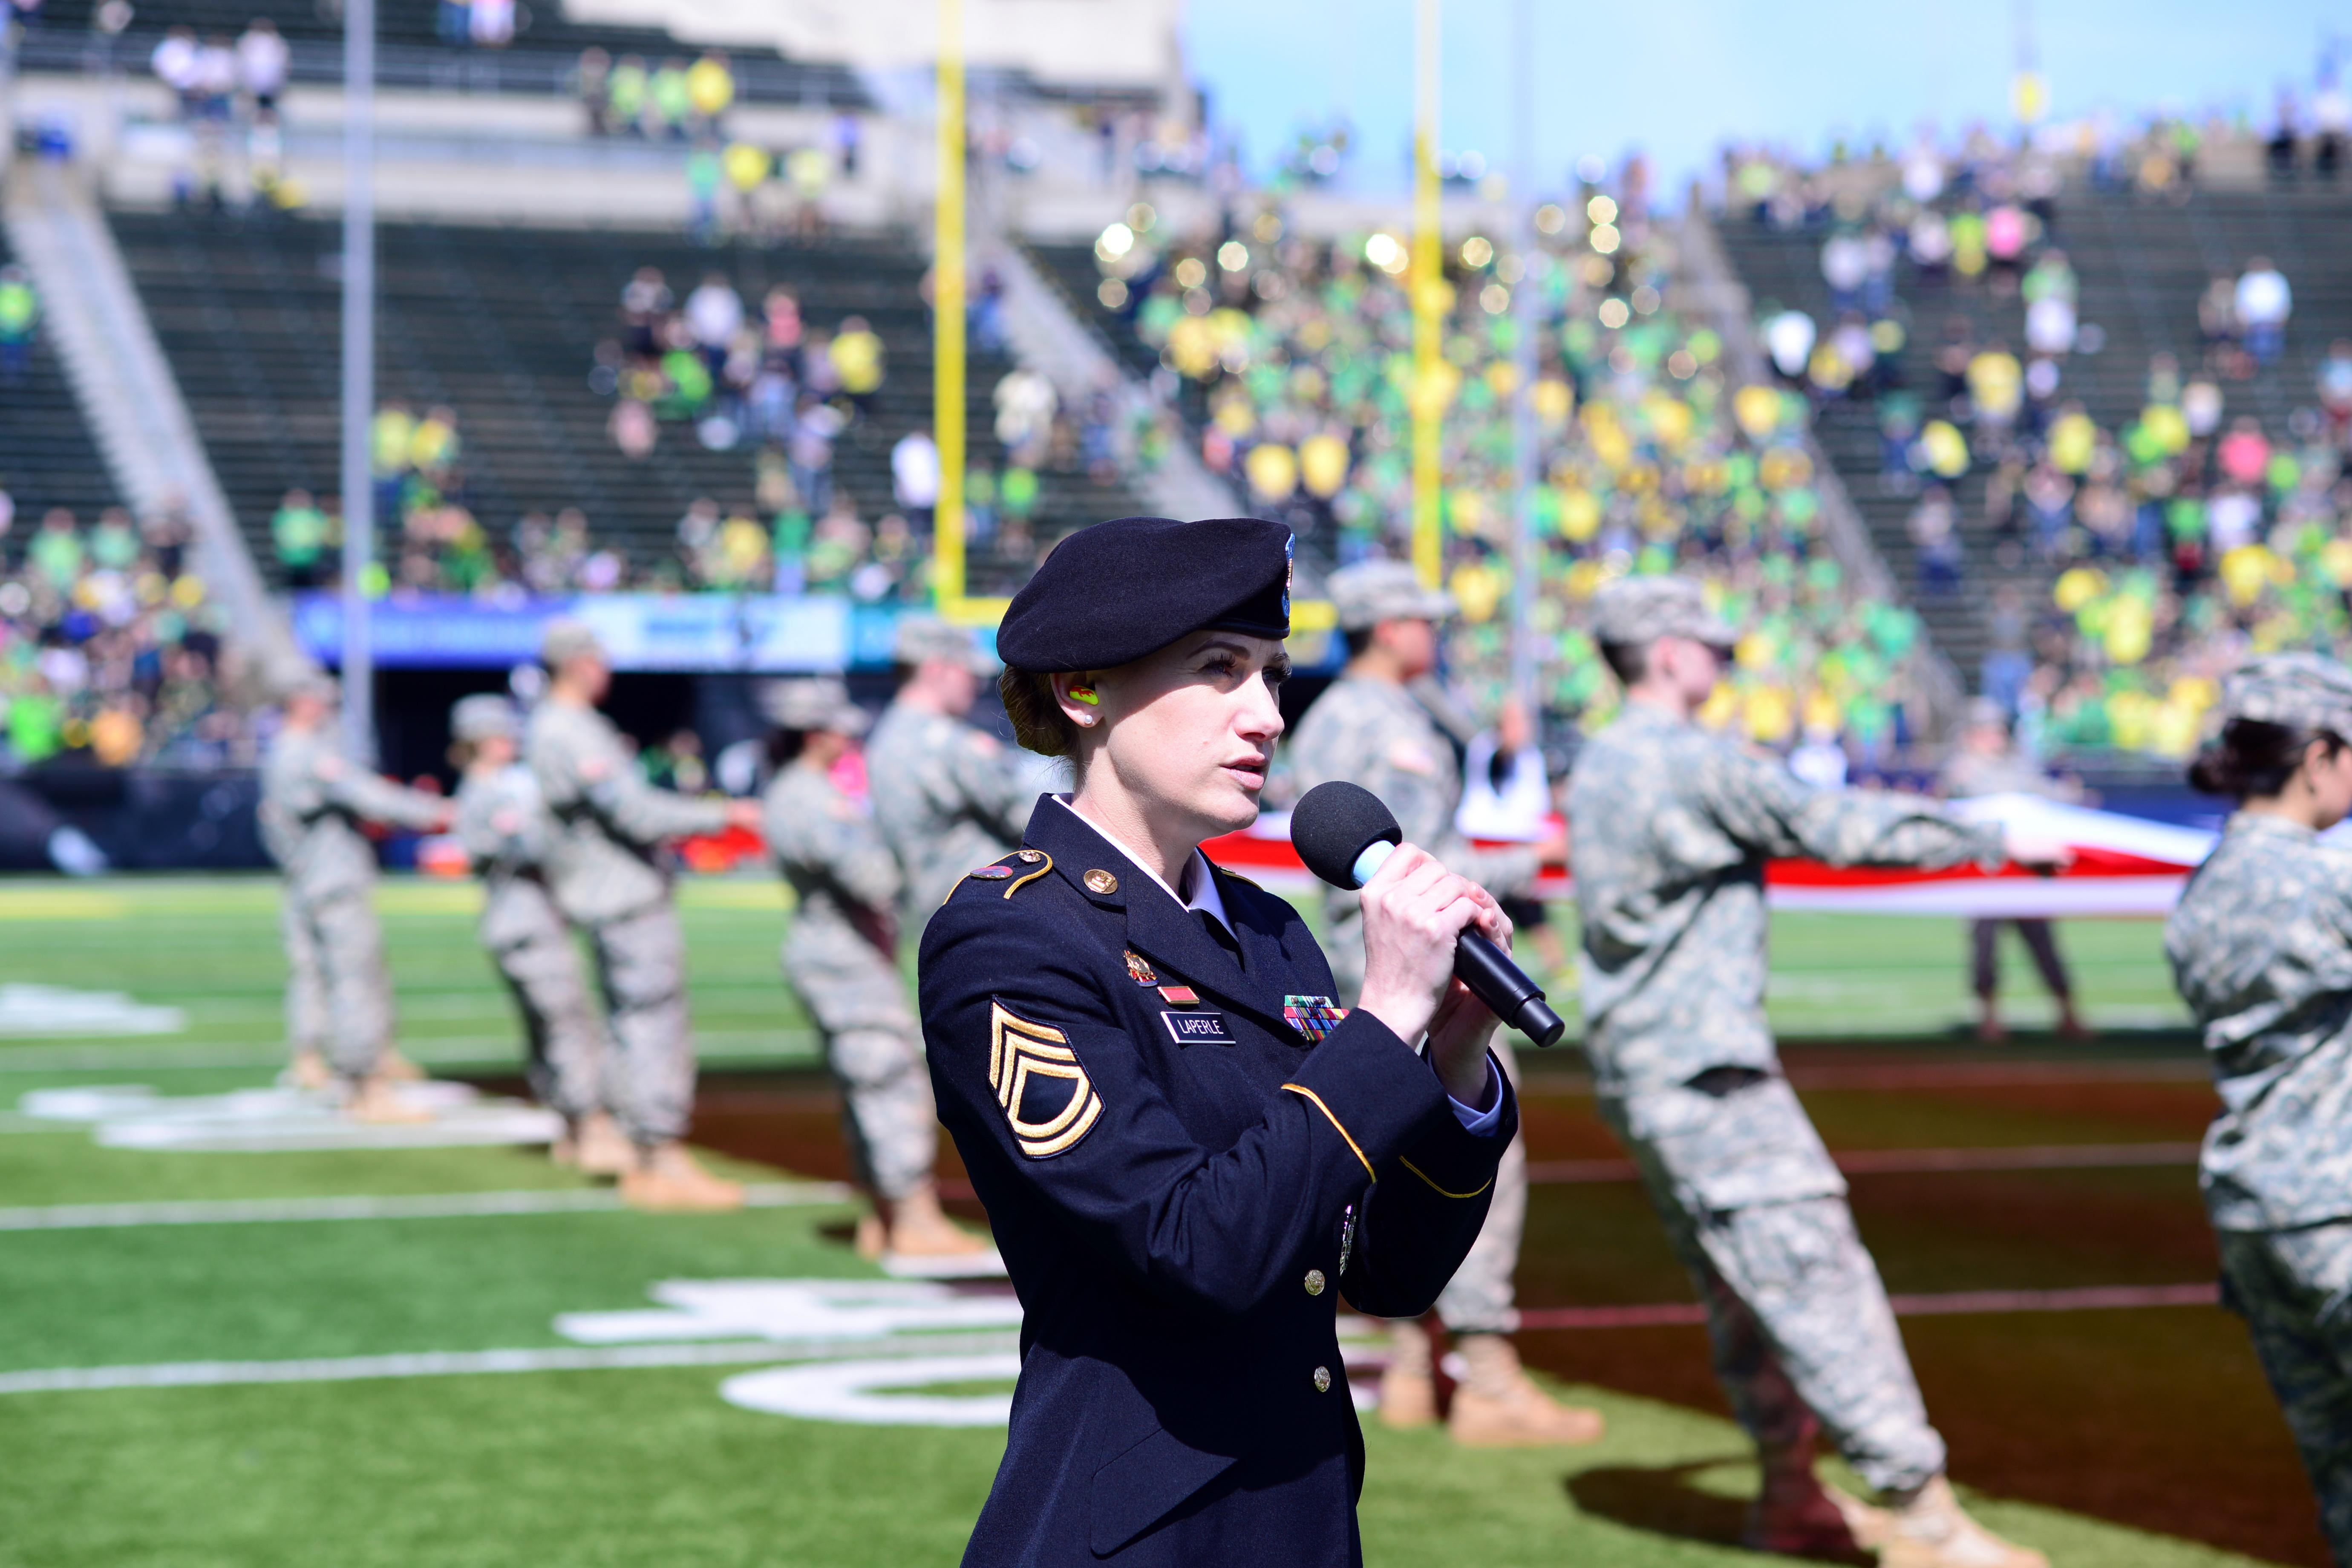 Oregon Army National Guard Sgt. 1st Class Amber LaPerle sings the National Anthem to begin the University of Oregon's Spring Game, April 29, 2017, in Eugene, Oregon. Veterans from every branch of service participated in Military Appreciation Day activities during the game. (Photo by Sgt. 1st Class April Davis, Oregon Military Department Public Affairs)